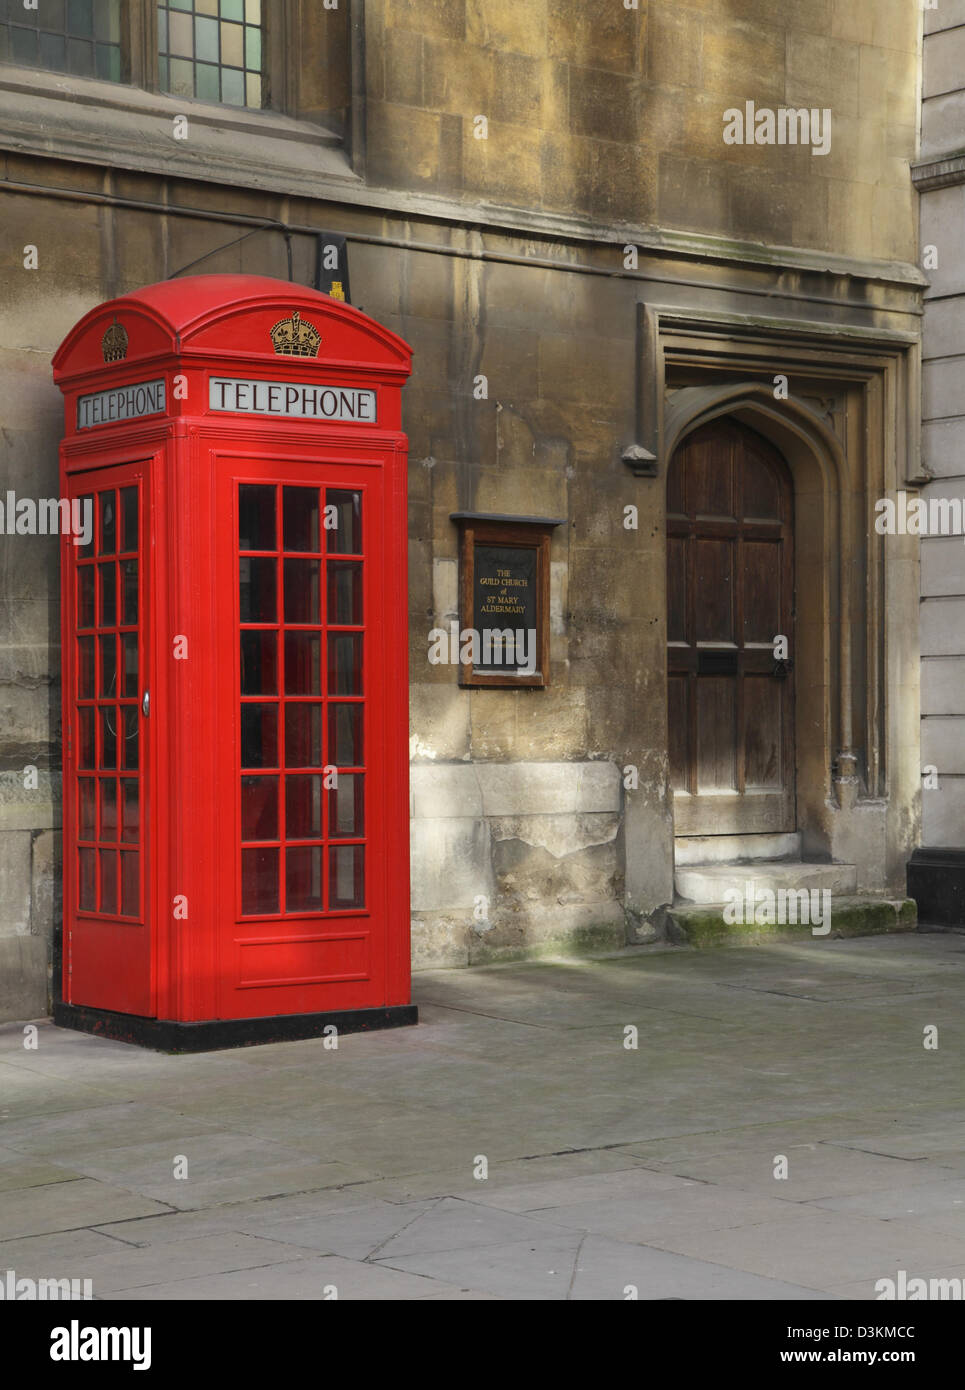 Red telephone box in the City of London by the historic St Mary Aldermary church England UK GB - Stock Image